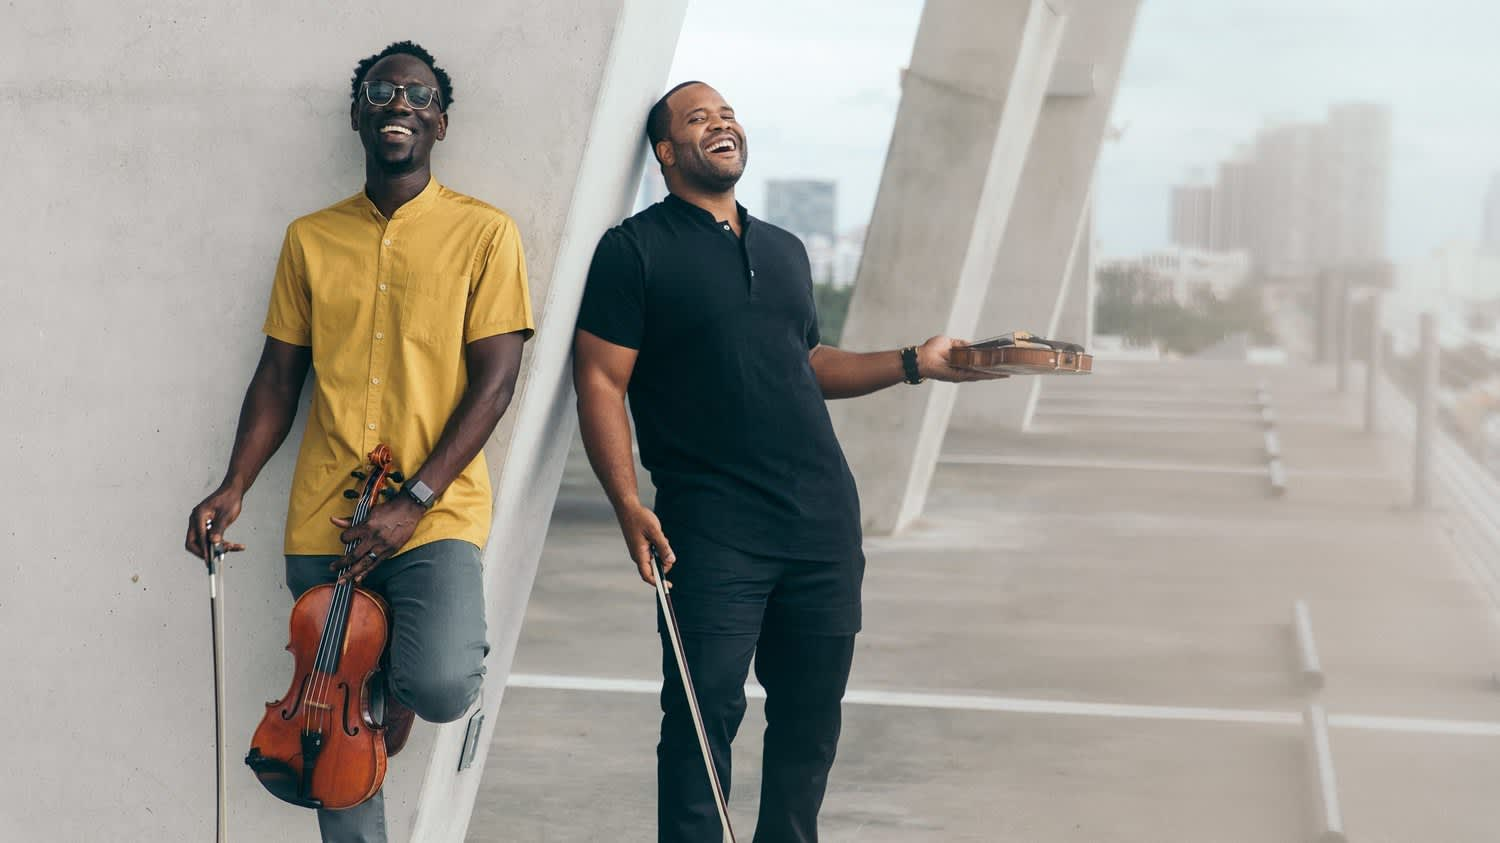 Black Violin featured in recent NPR and PBS programs